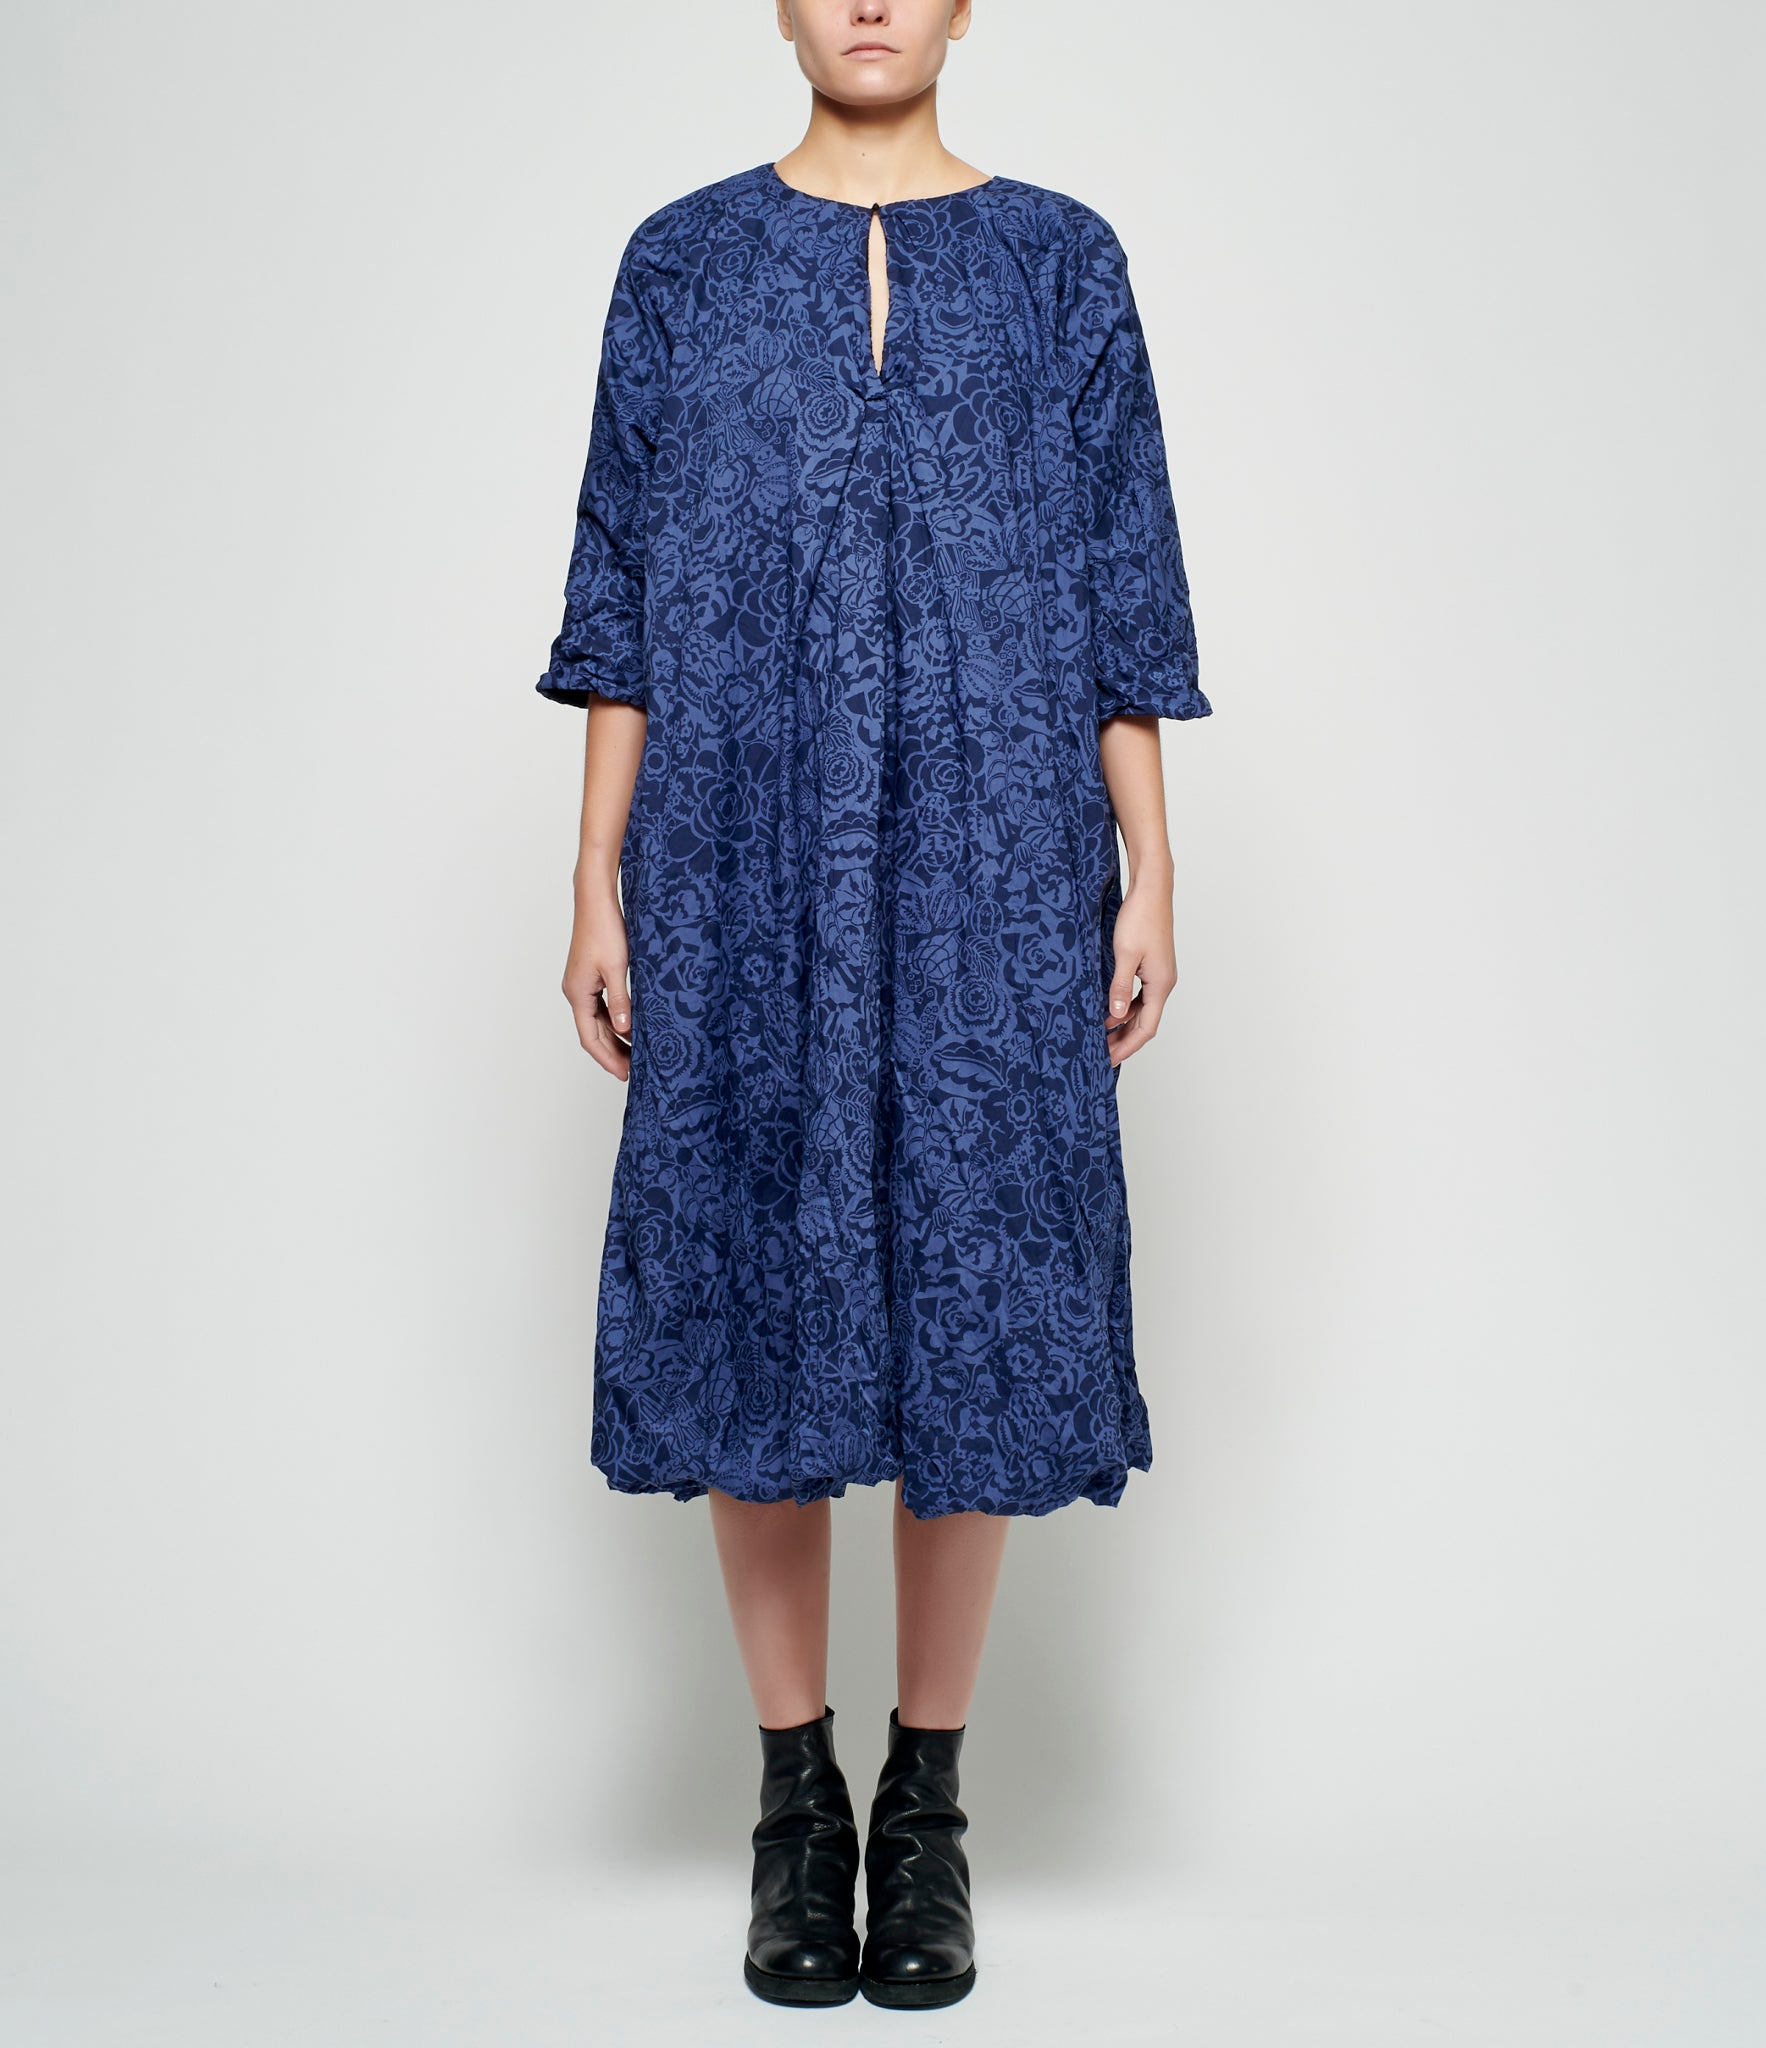 Daniela Gregis Reversible Tonal Blue Lily Liberty London Print Lined Wool Dress